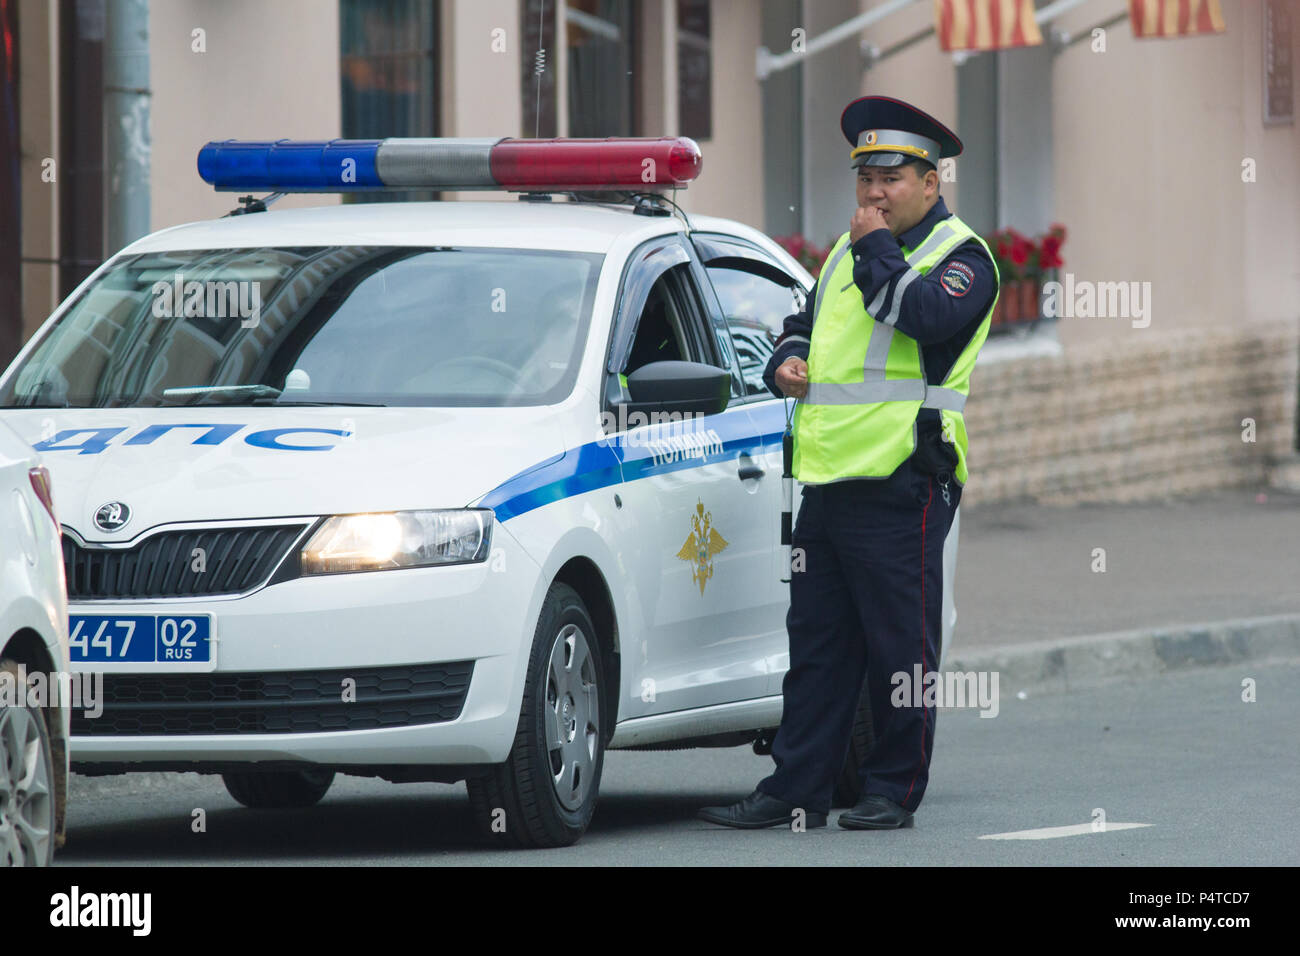 KAZAN, RUSSIA - JUNE 21, 2018: Traffic policeman standing near company car at the street - Stock Image